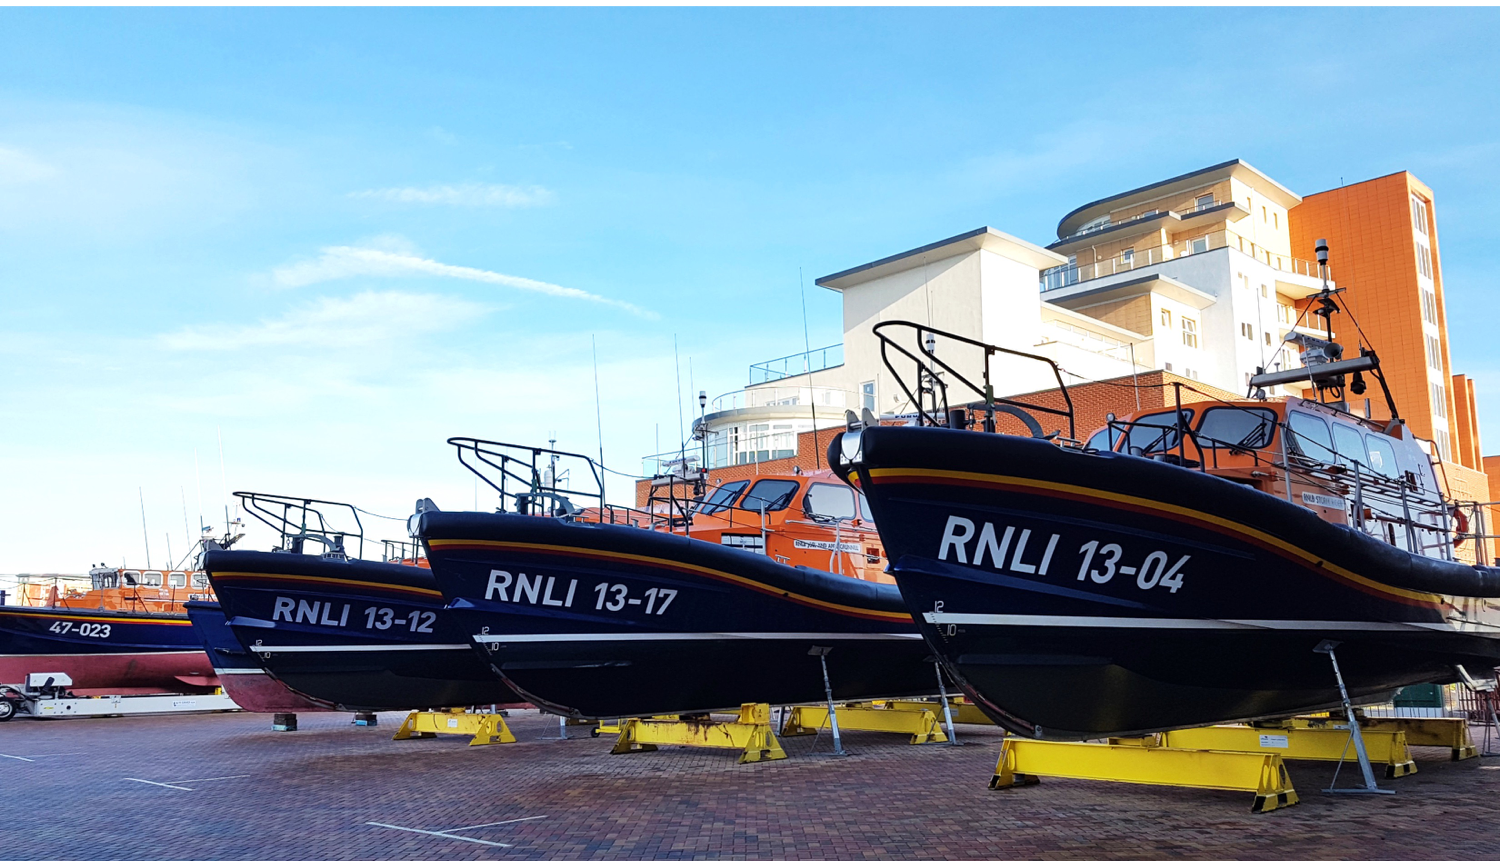 Some lifeboats from the Royal National Lifeboat Institution.